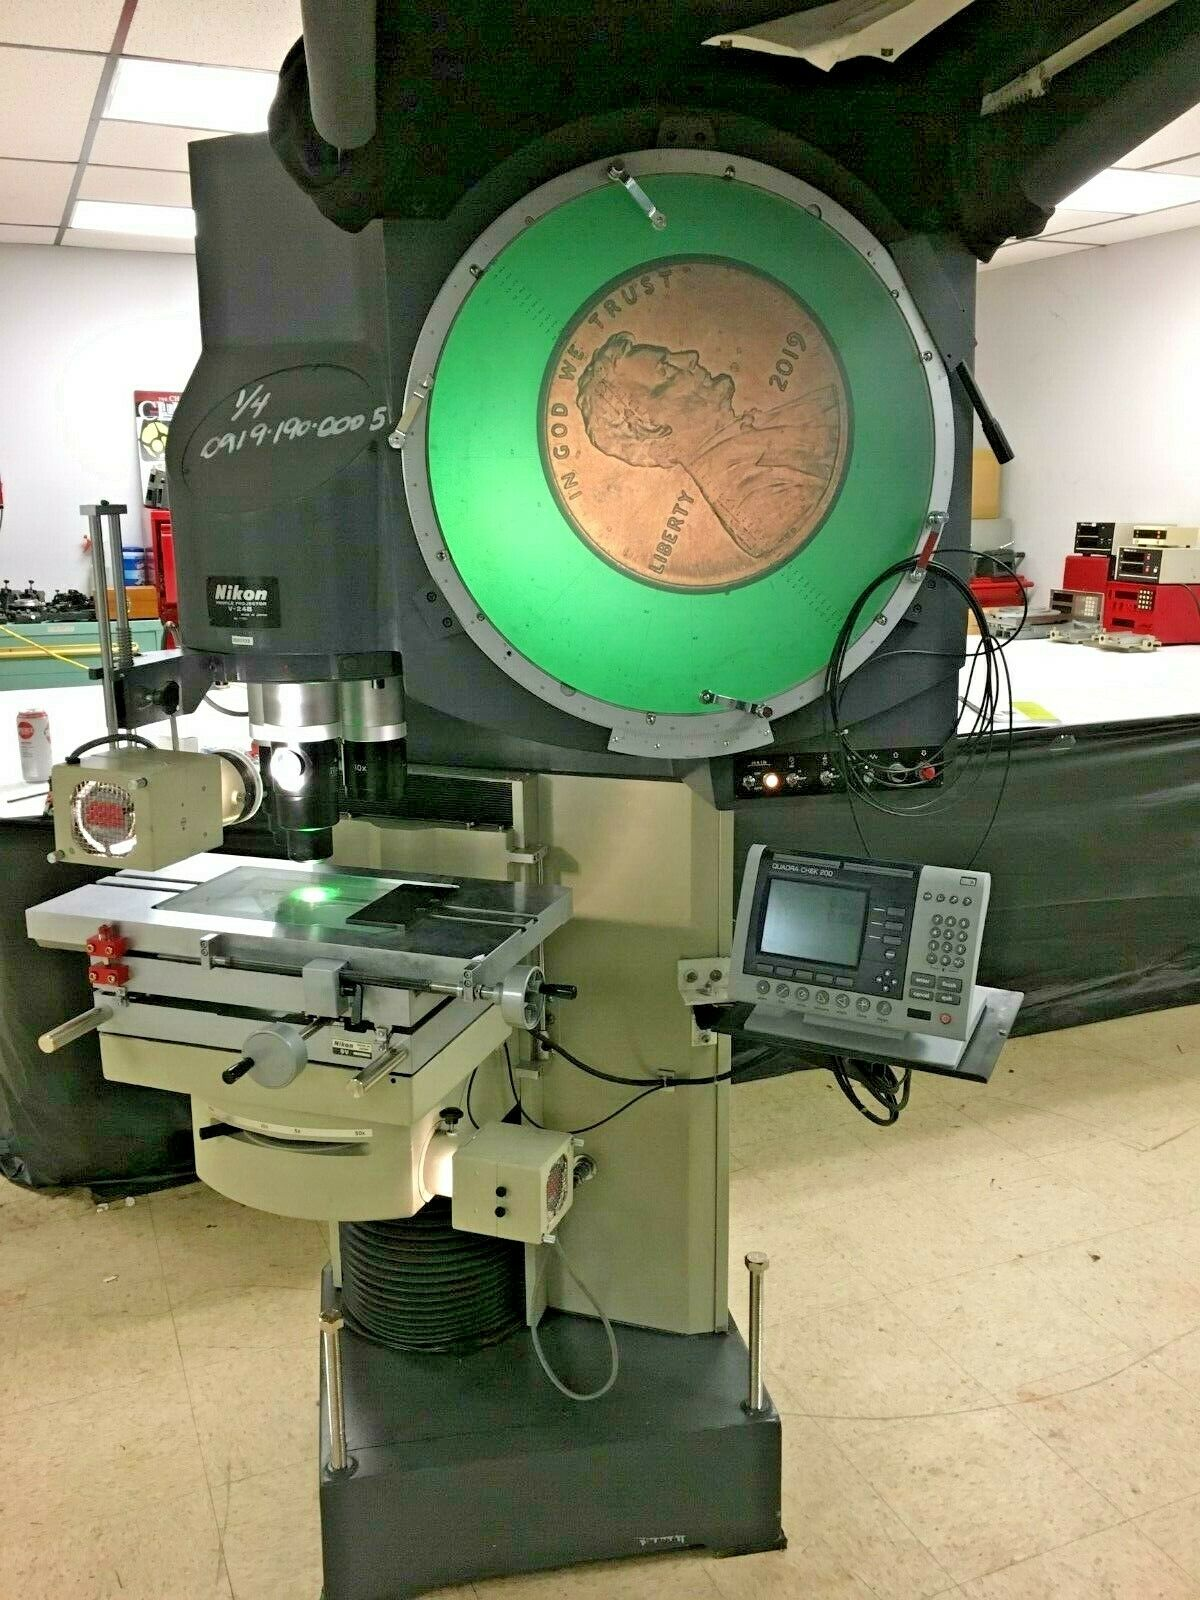 "24"" NIKON Model V-24B Vertical Beam Floor Model Optical Comparator / Profile Projector, S/N 77201, New 2006."